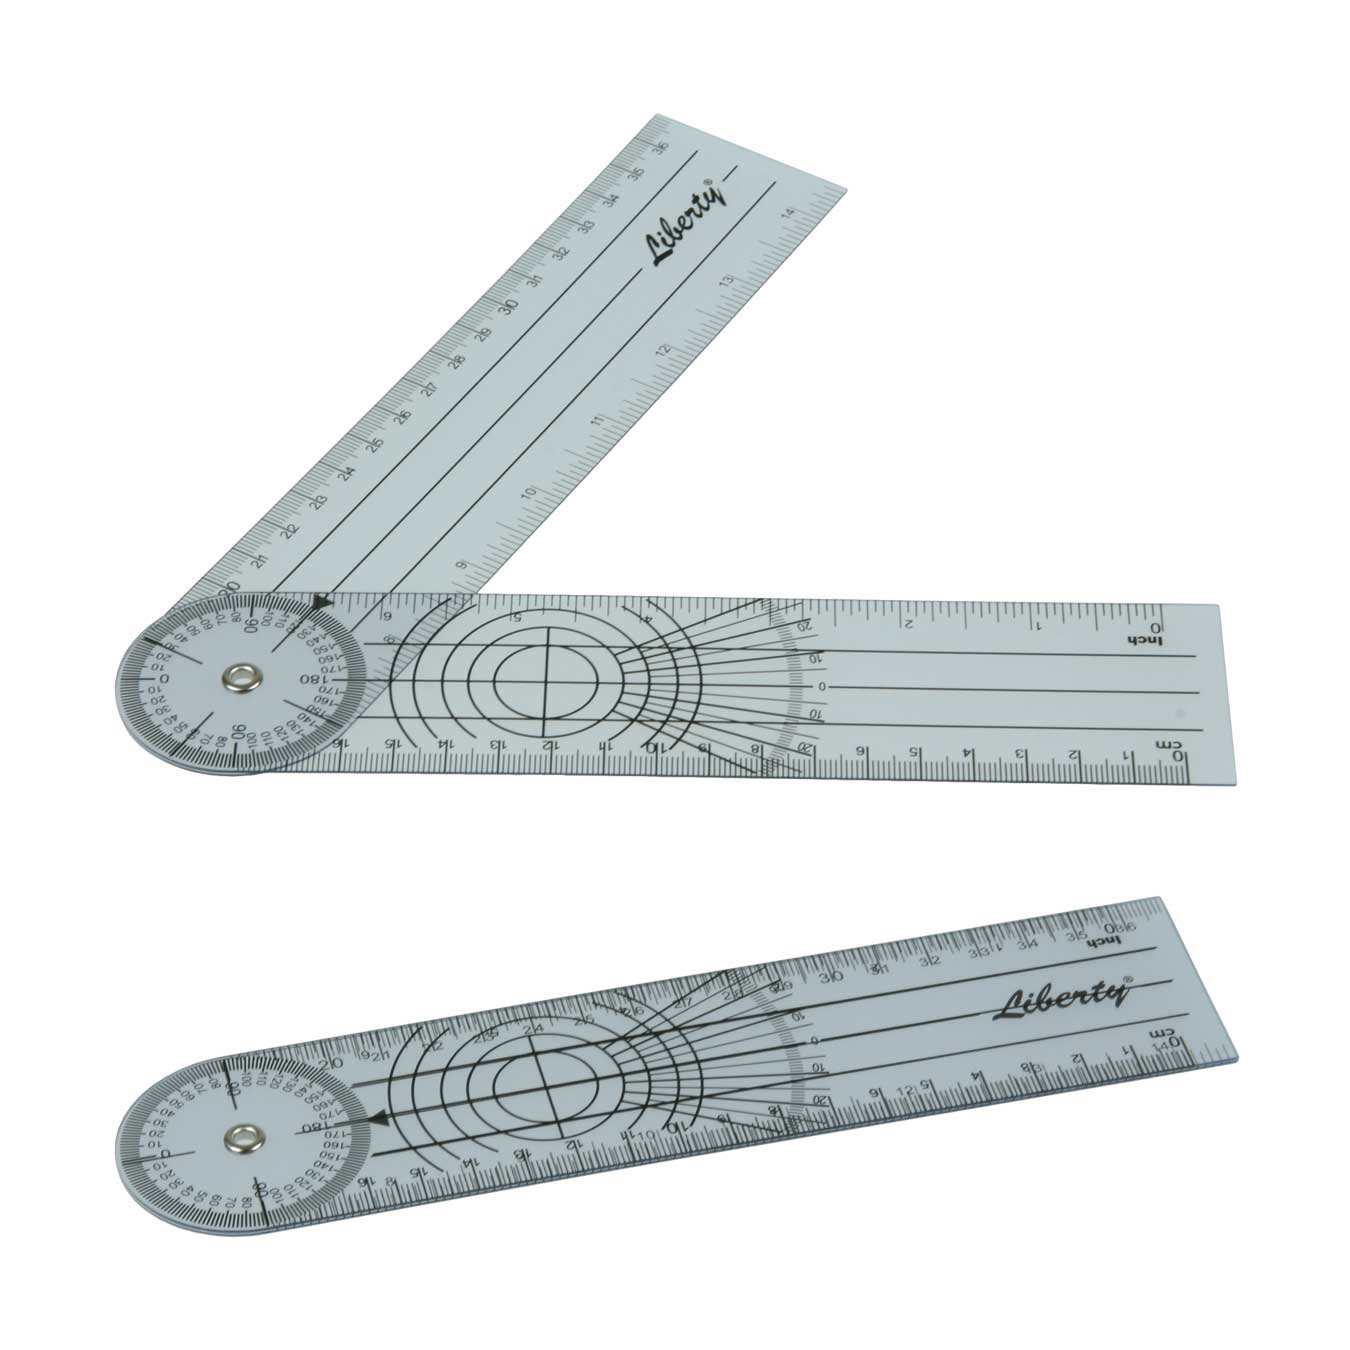 GP8-3-Liberty-Goniometer-Plastic-180-Degrees-19cm